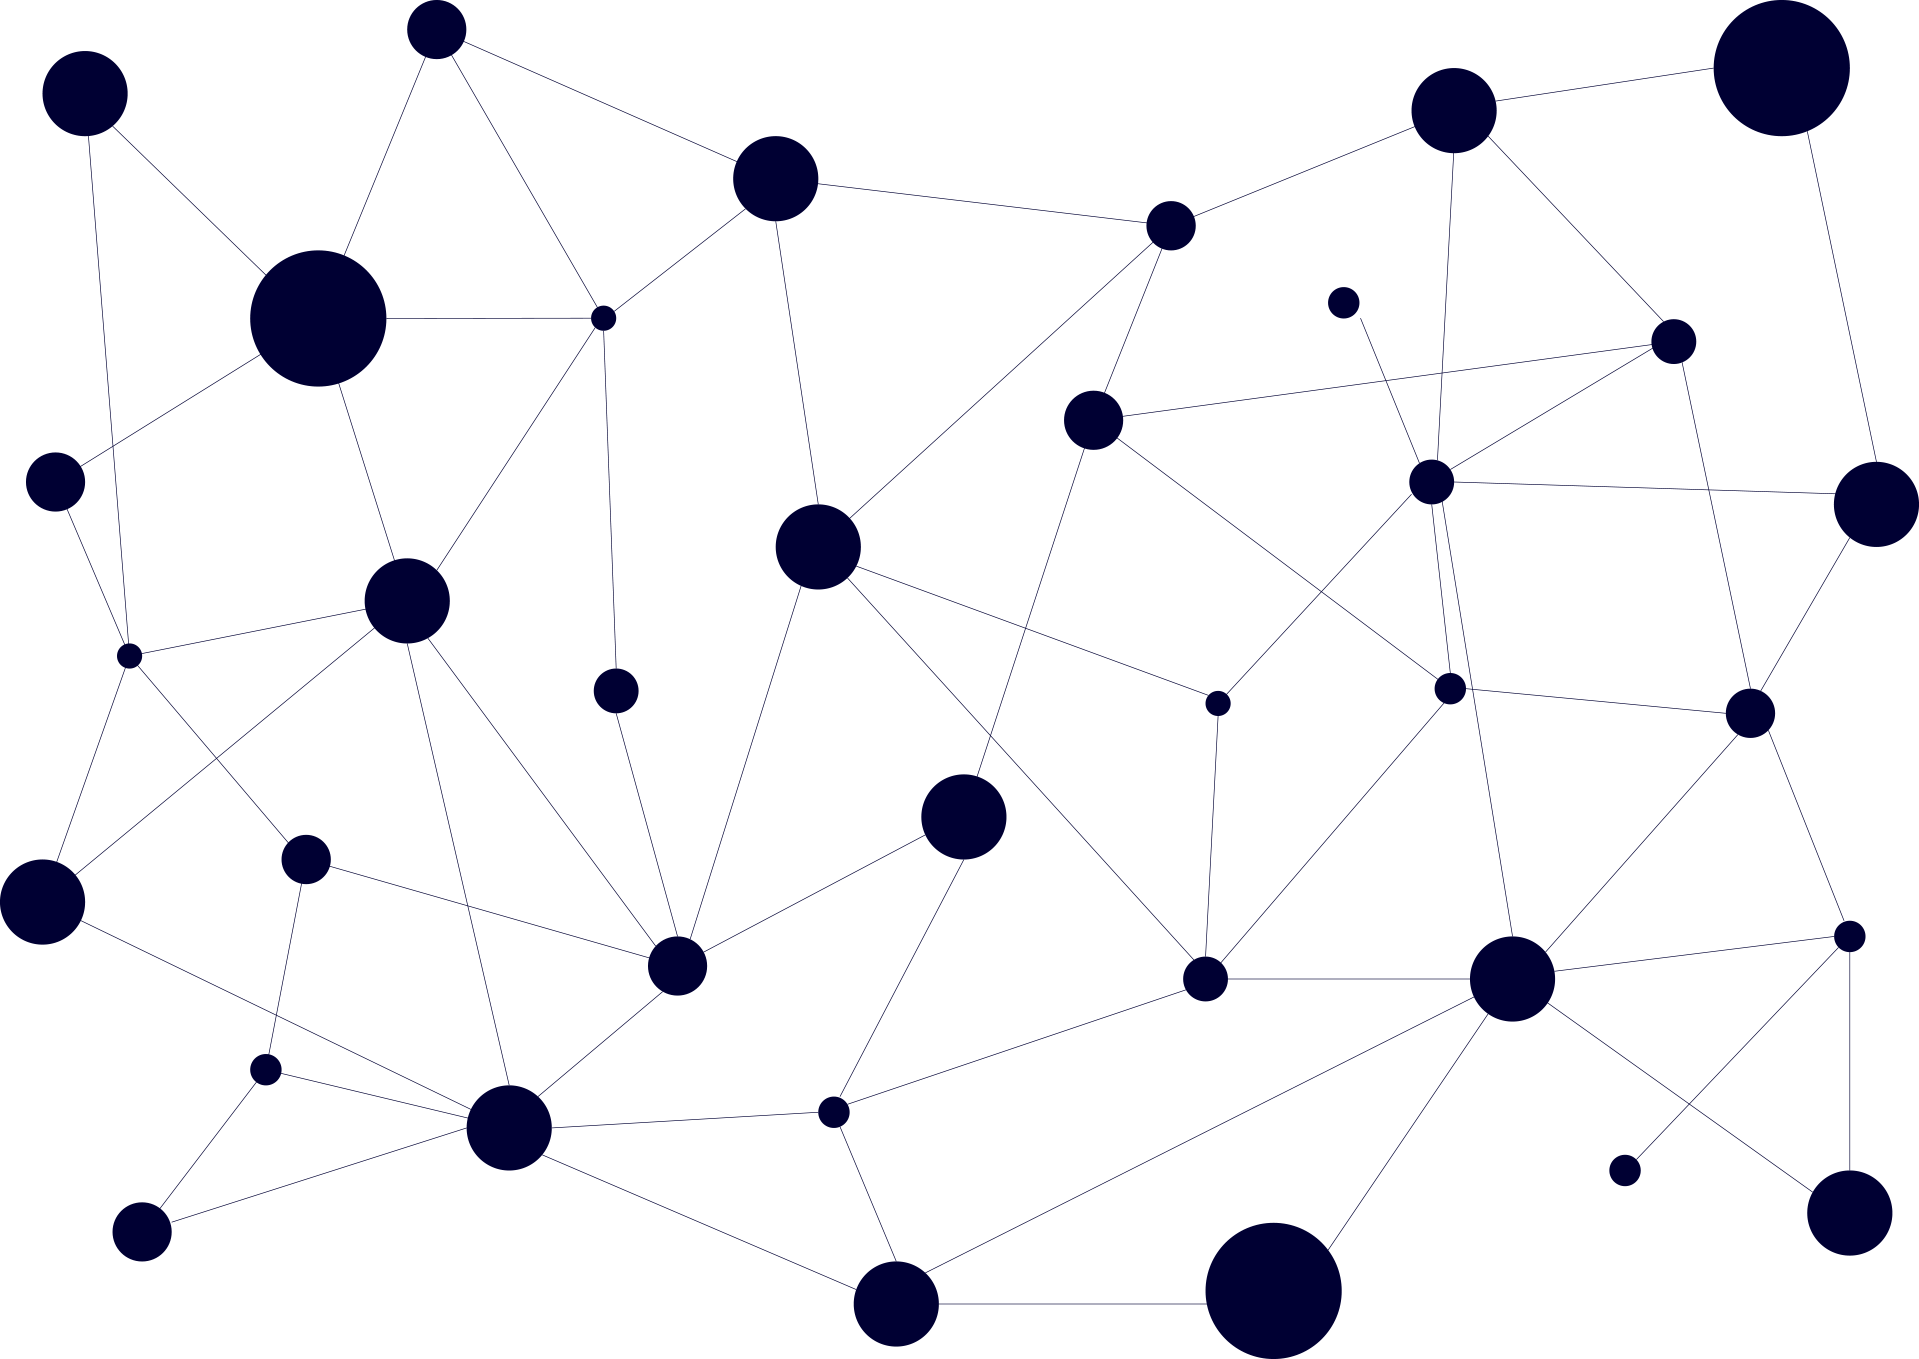 Download Node Profile Blockchain System Bitcoin User HQ PNG Image.